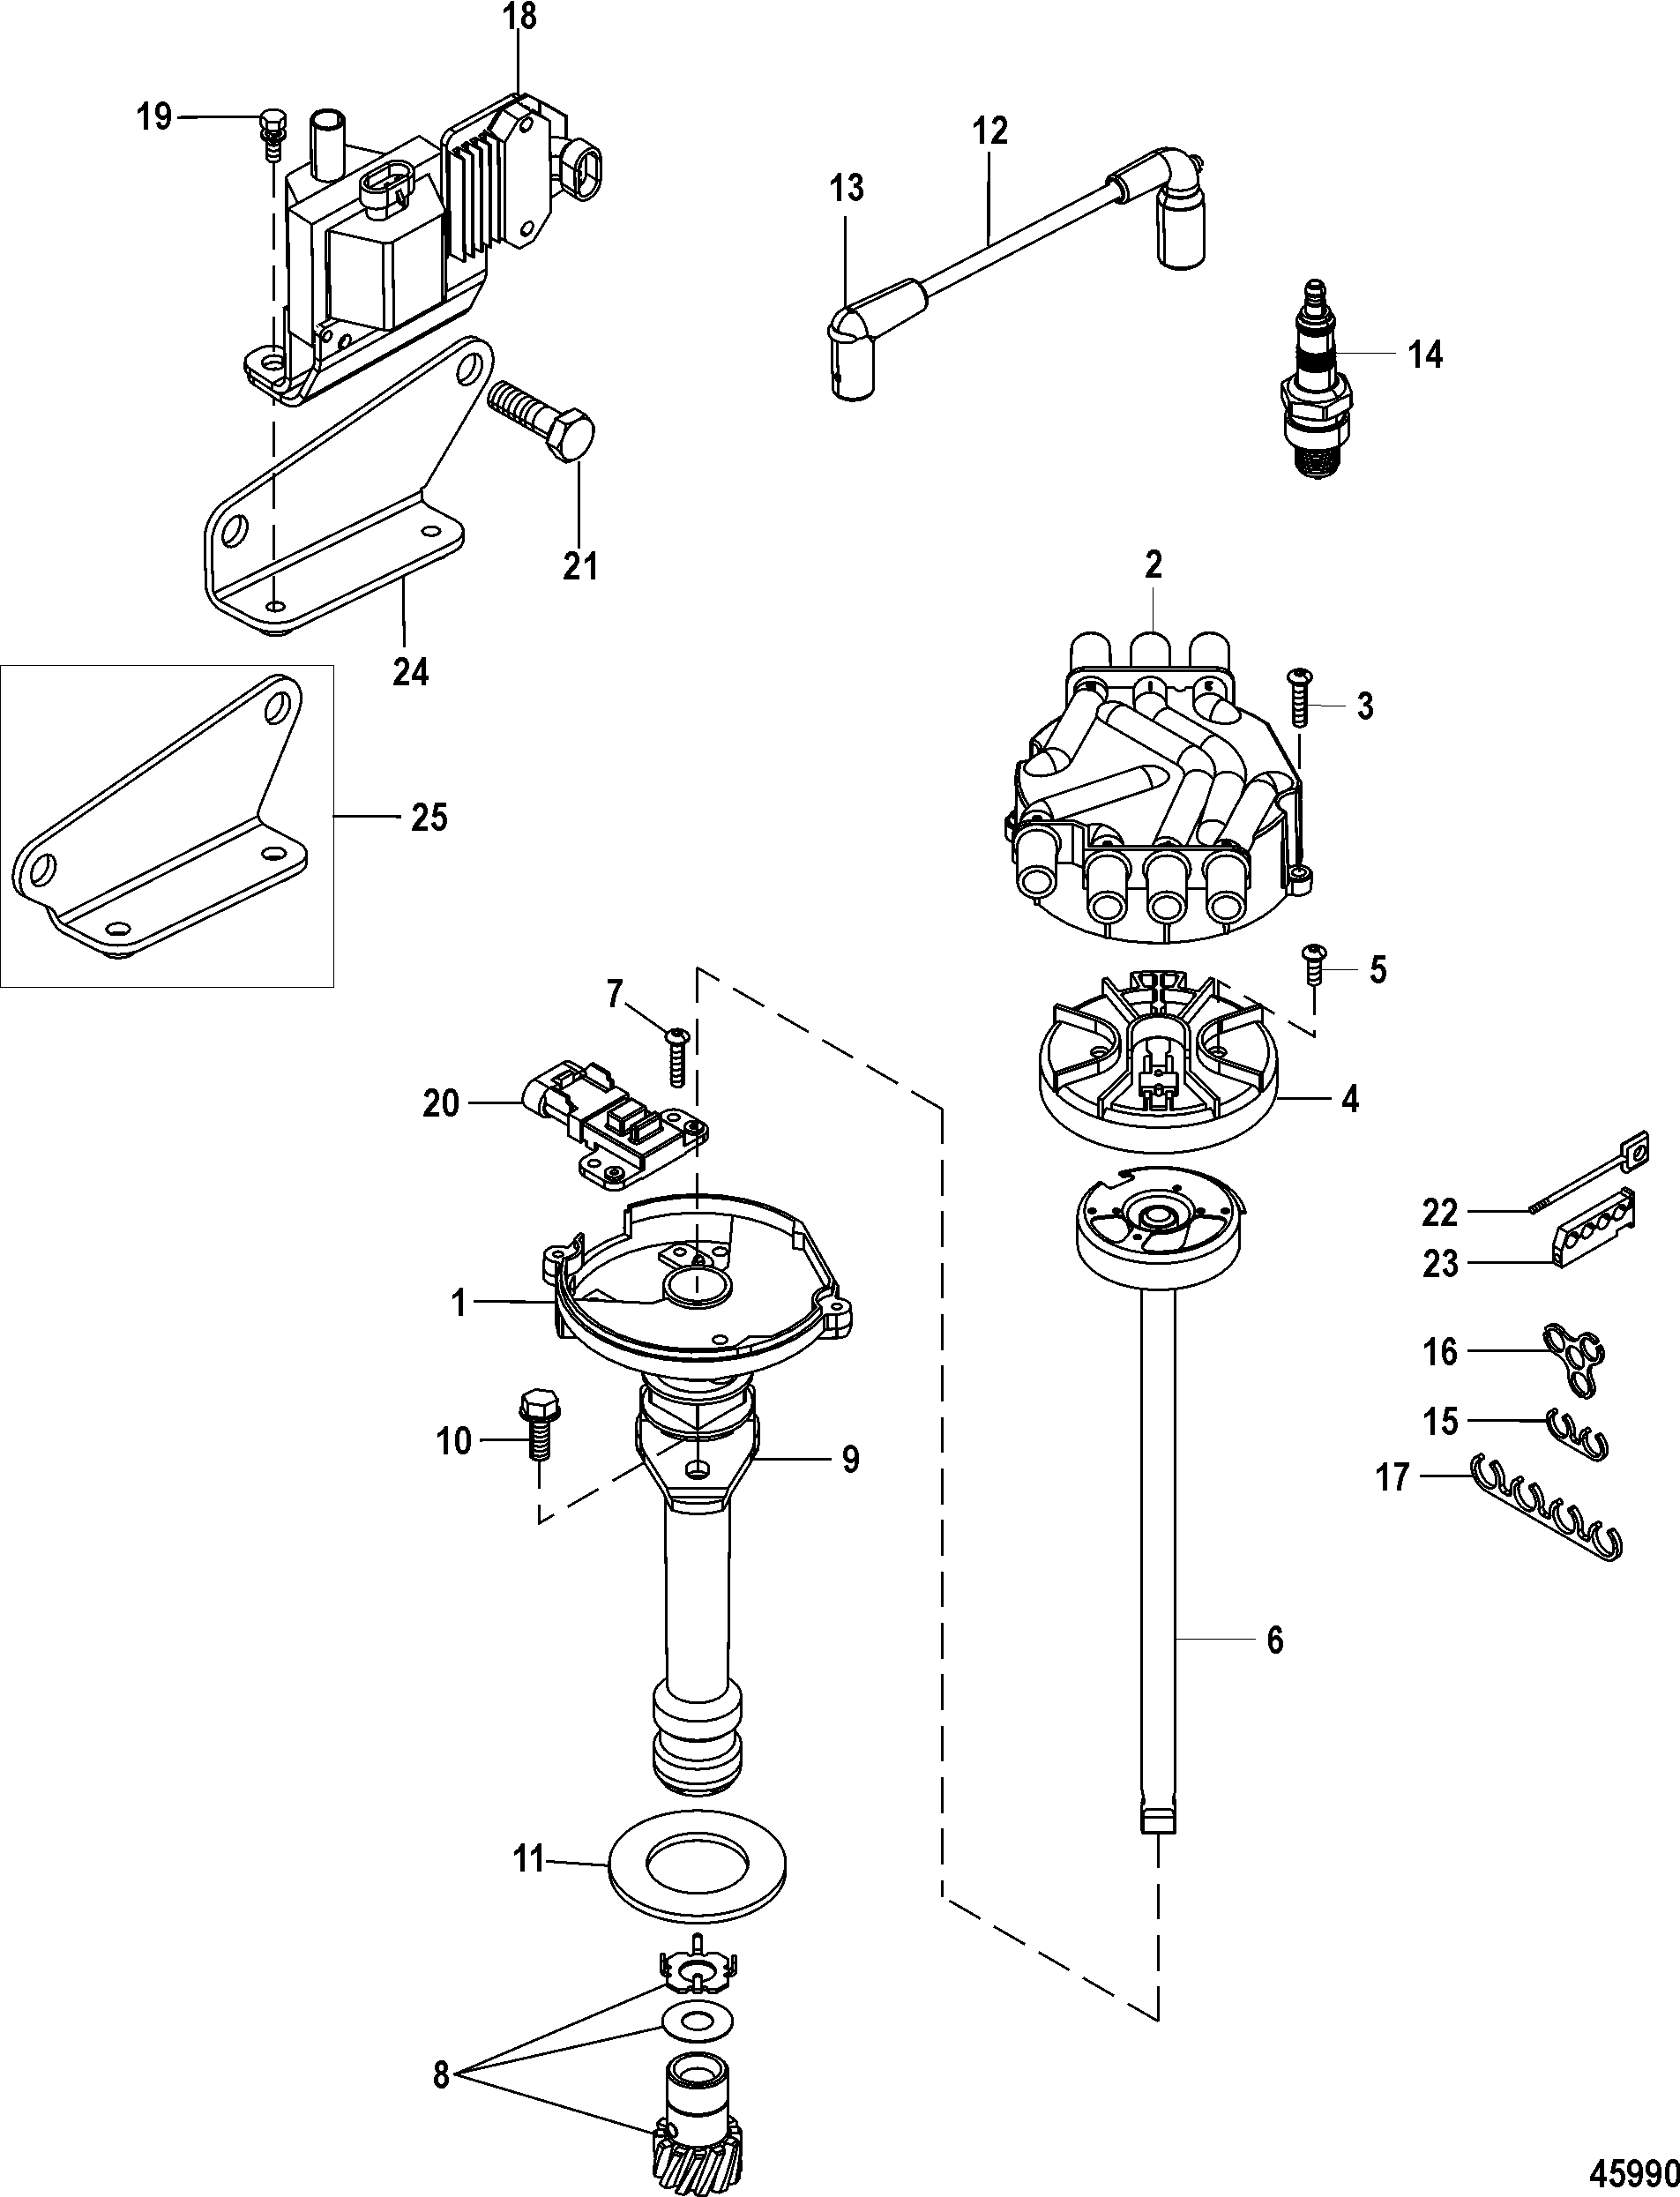 Distributor and Ignition Components FOR MERCRUISER 4.3L